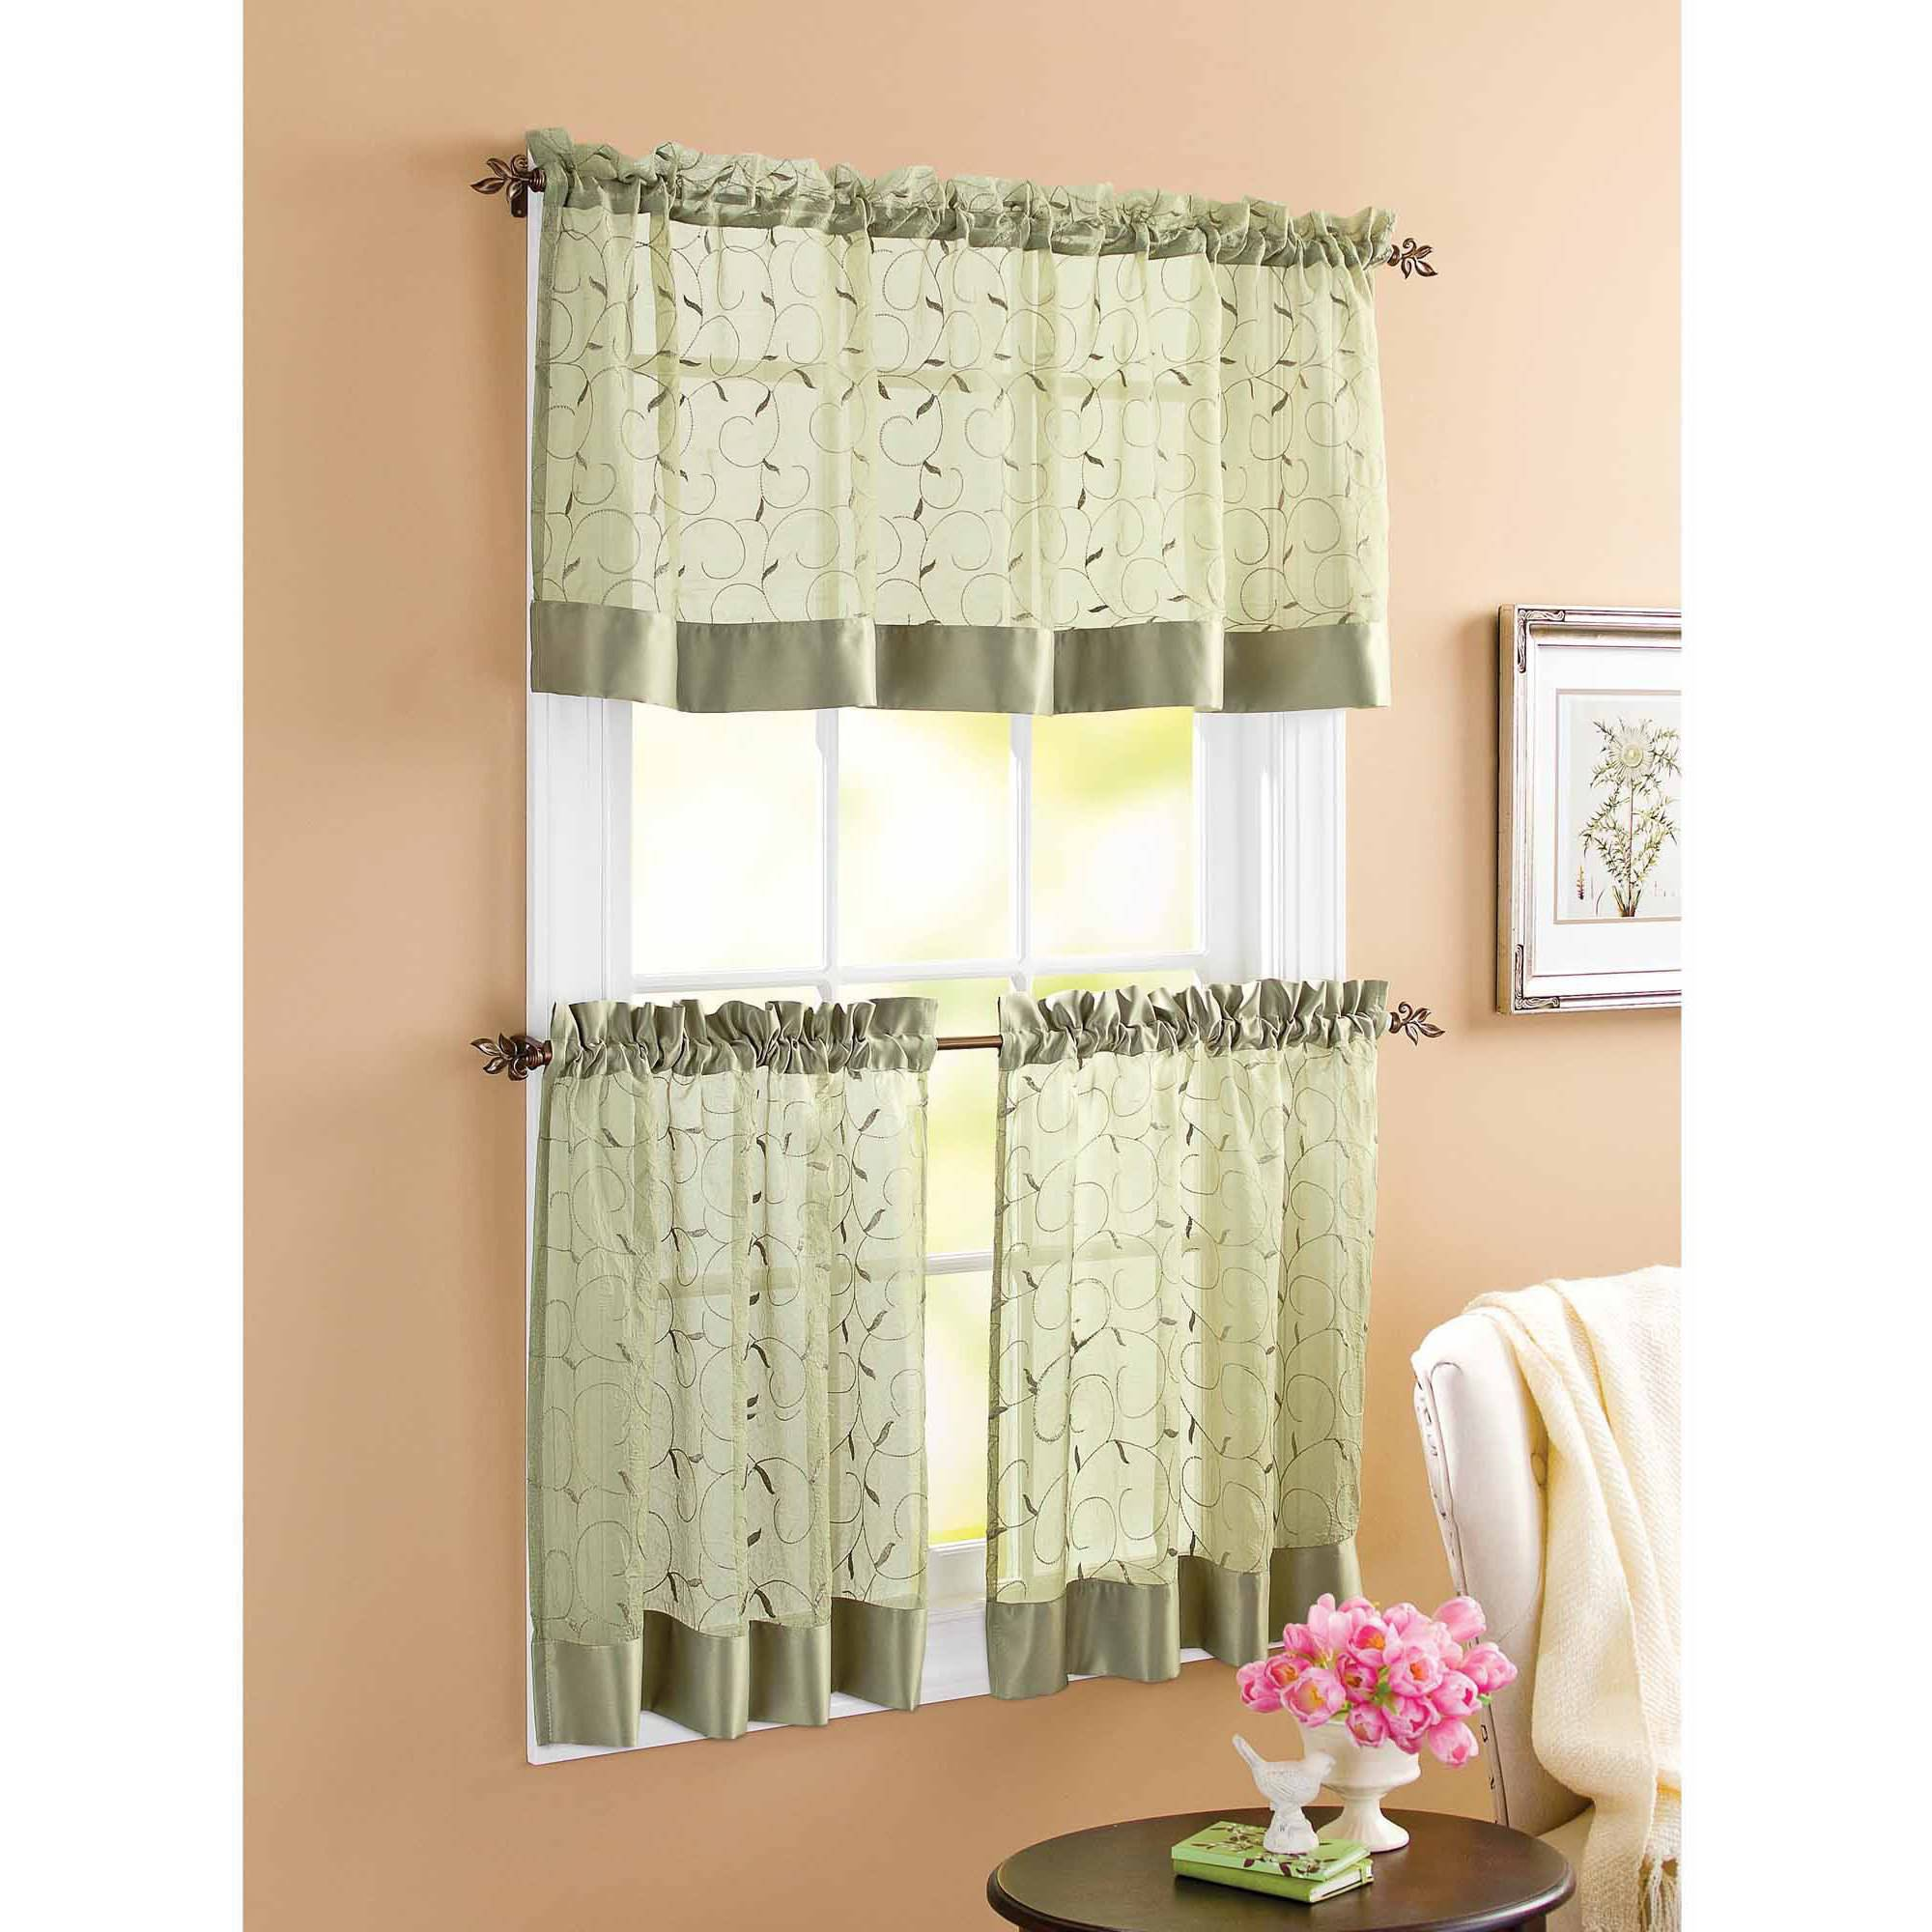 Better Homes And Gardens Linen Leaf 3-Piece Kitchen Curtain Set